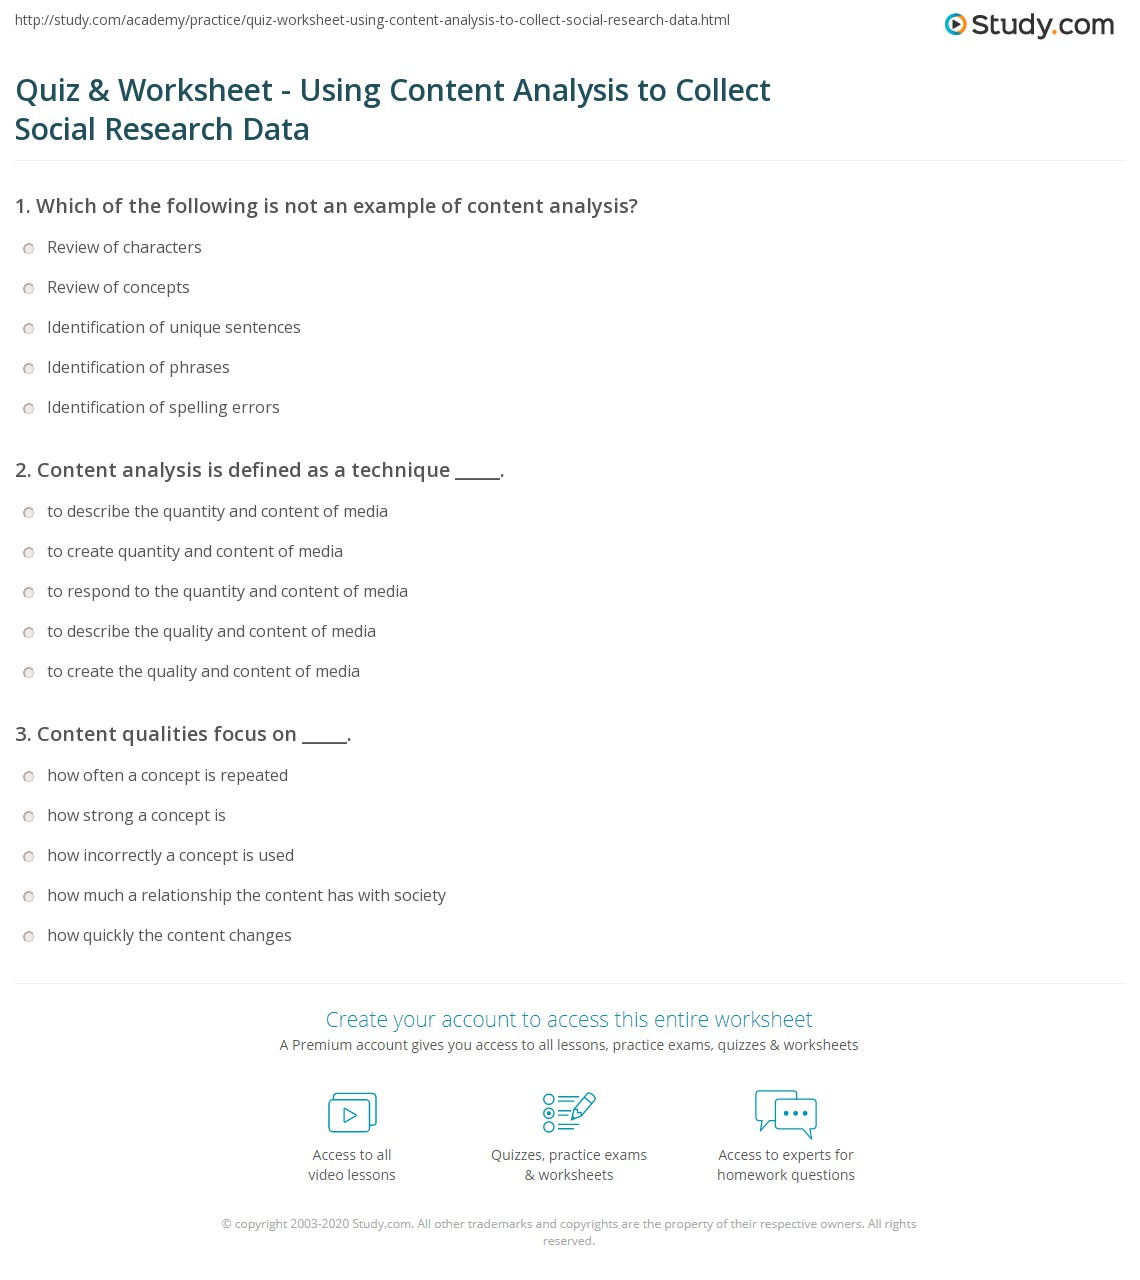 Quiz & Worksheet Using Content Analysis To Collect Social Research